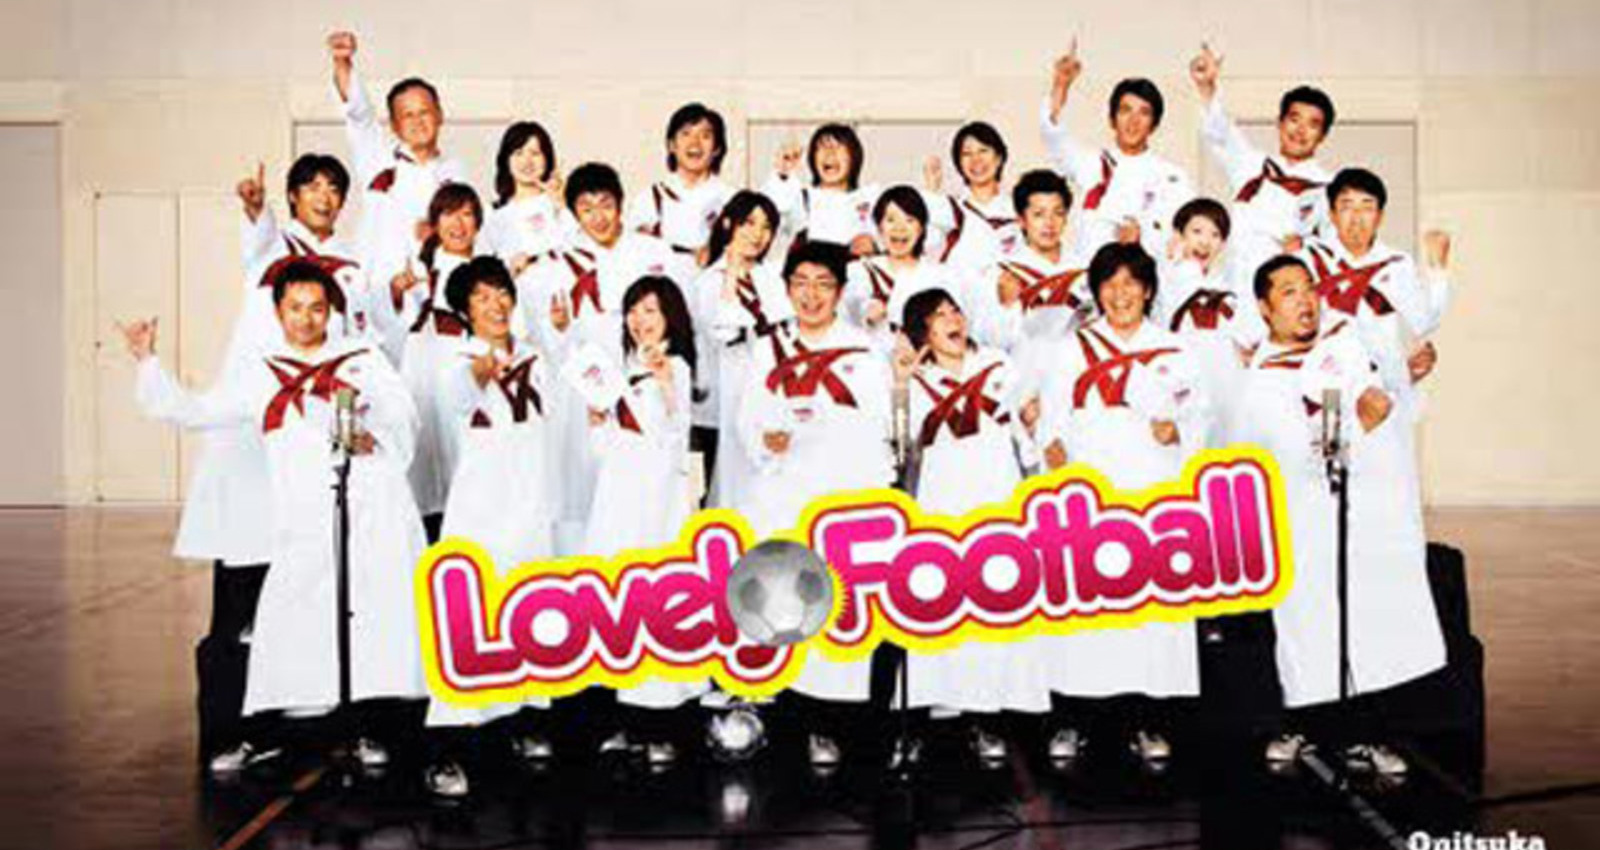 Lovely Football